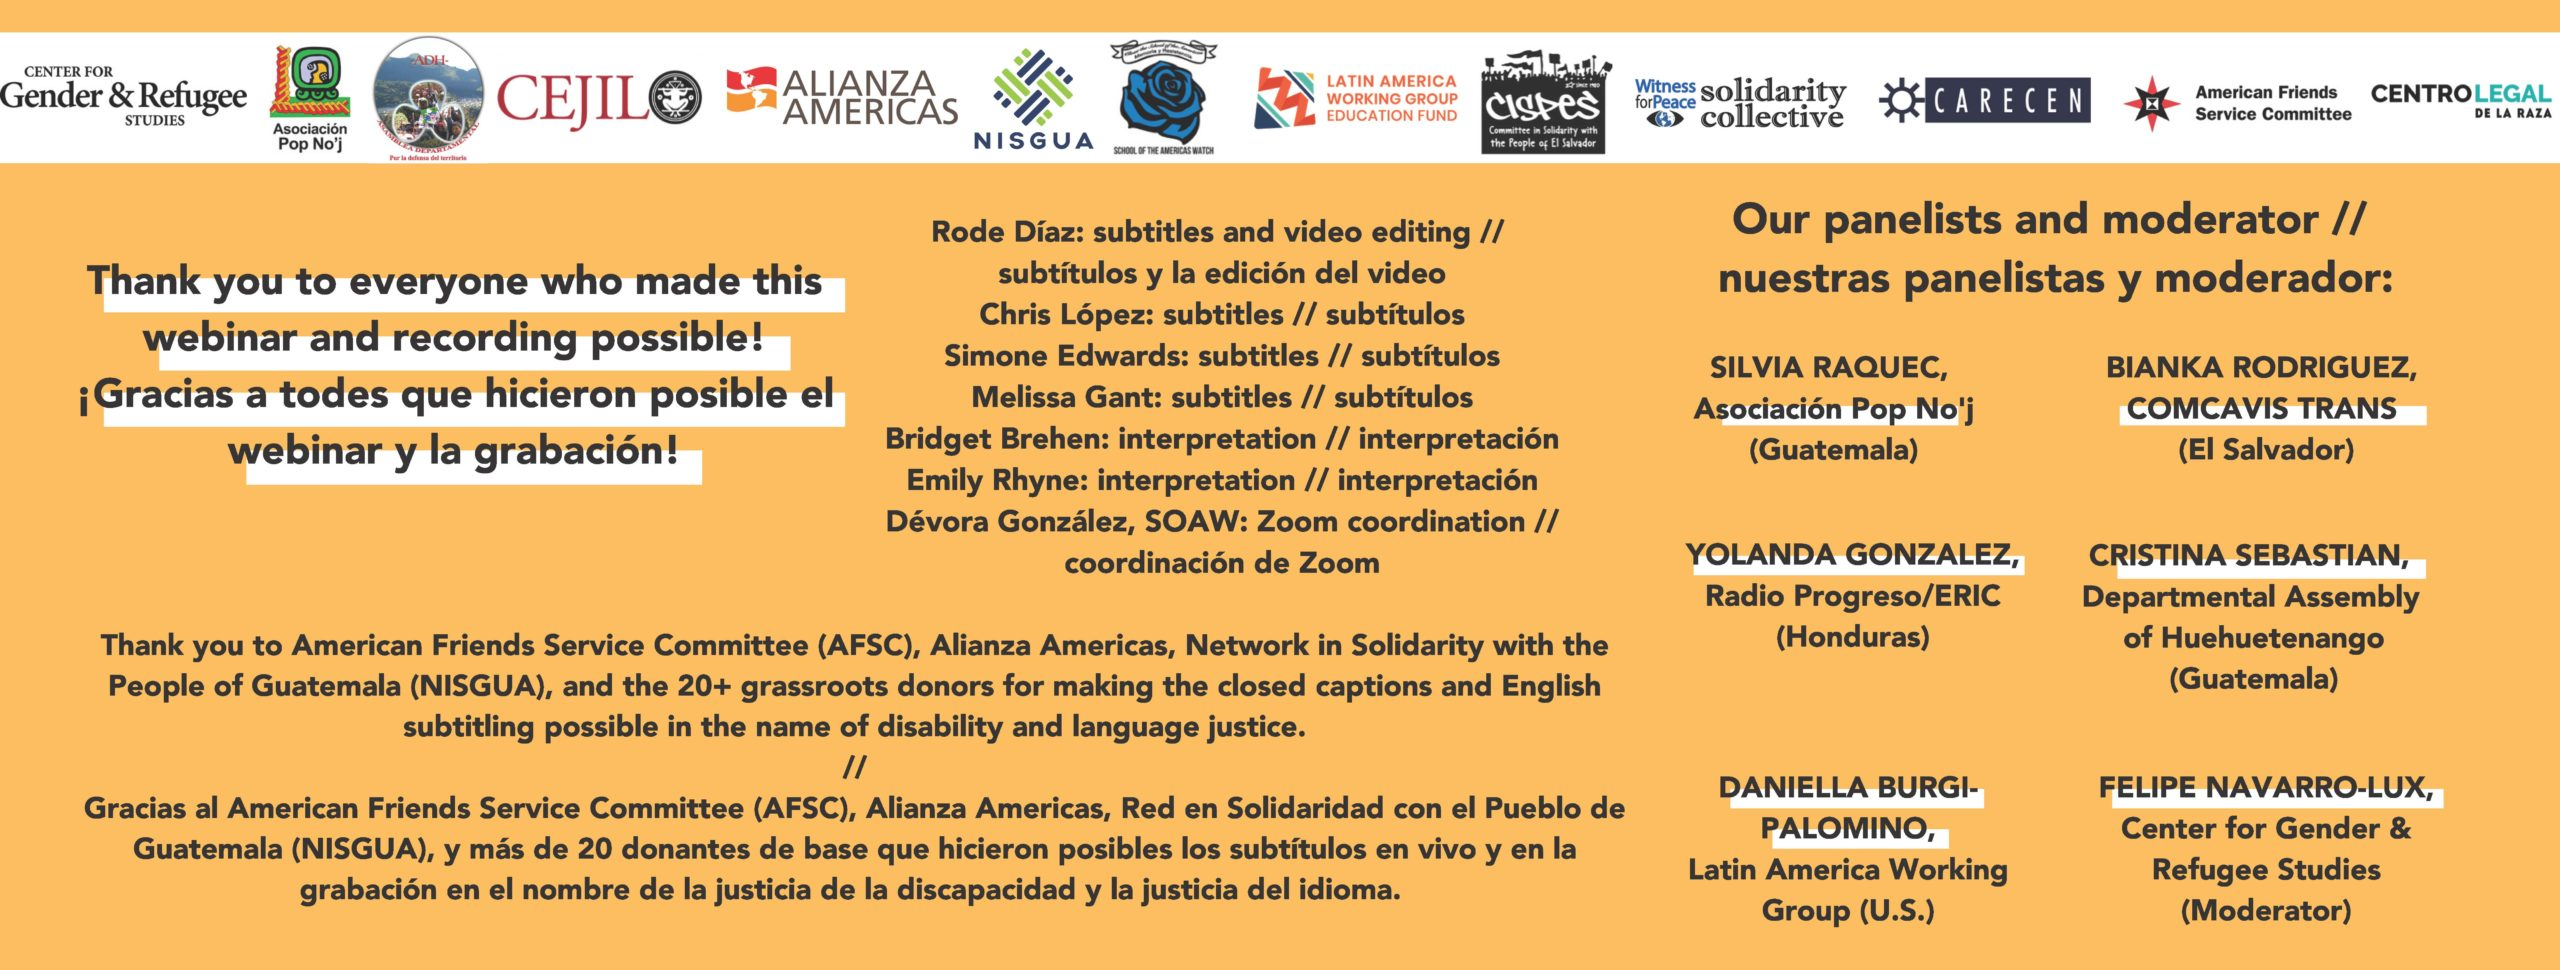 Graphic with thanks to the organizations that sponsored the webinar and the volunteers and staff who made it possible.